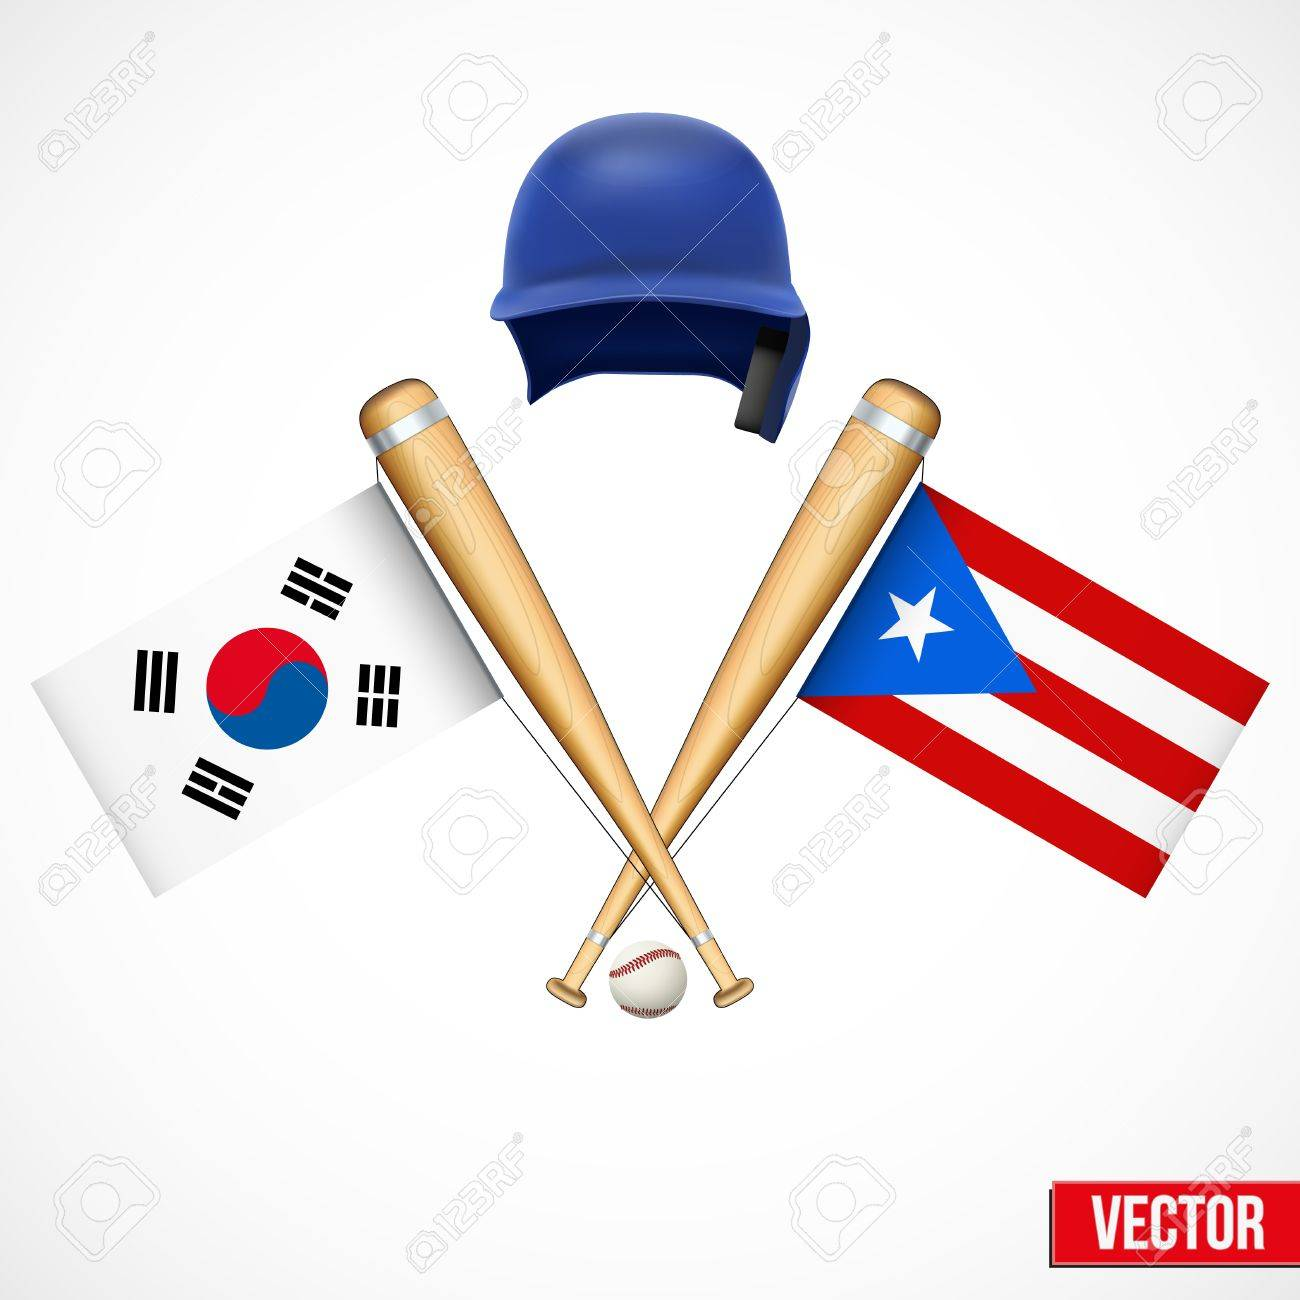 Symbols of baseball team south korea and puerto rico flags on symbols of baseball team south korea and puerto rico flags on bats vector illustration biocorpaavc Choice Image